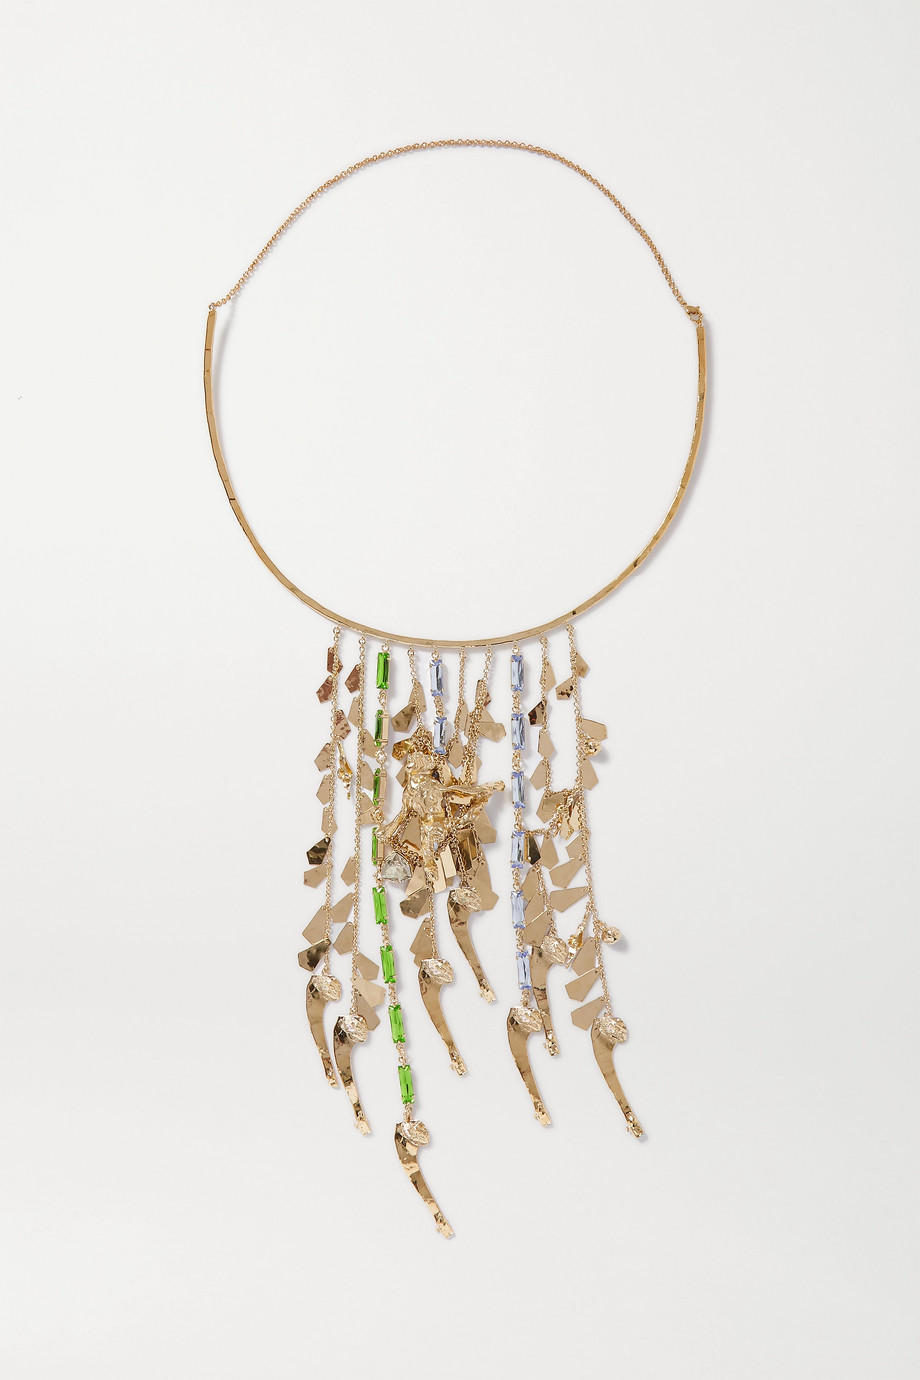 Valentino Valentino Garavani Cult gold-tone crystal necklace